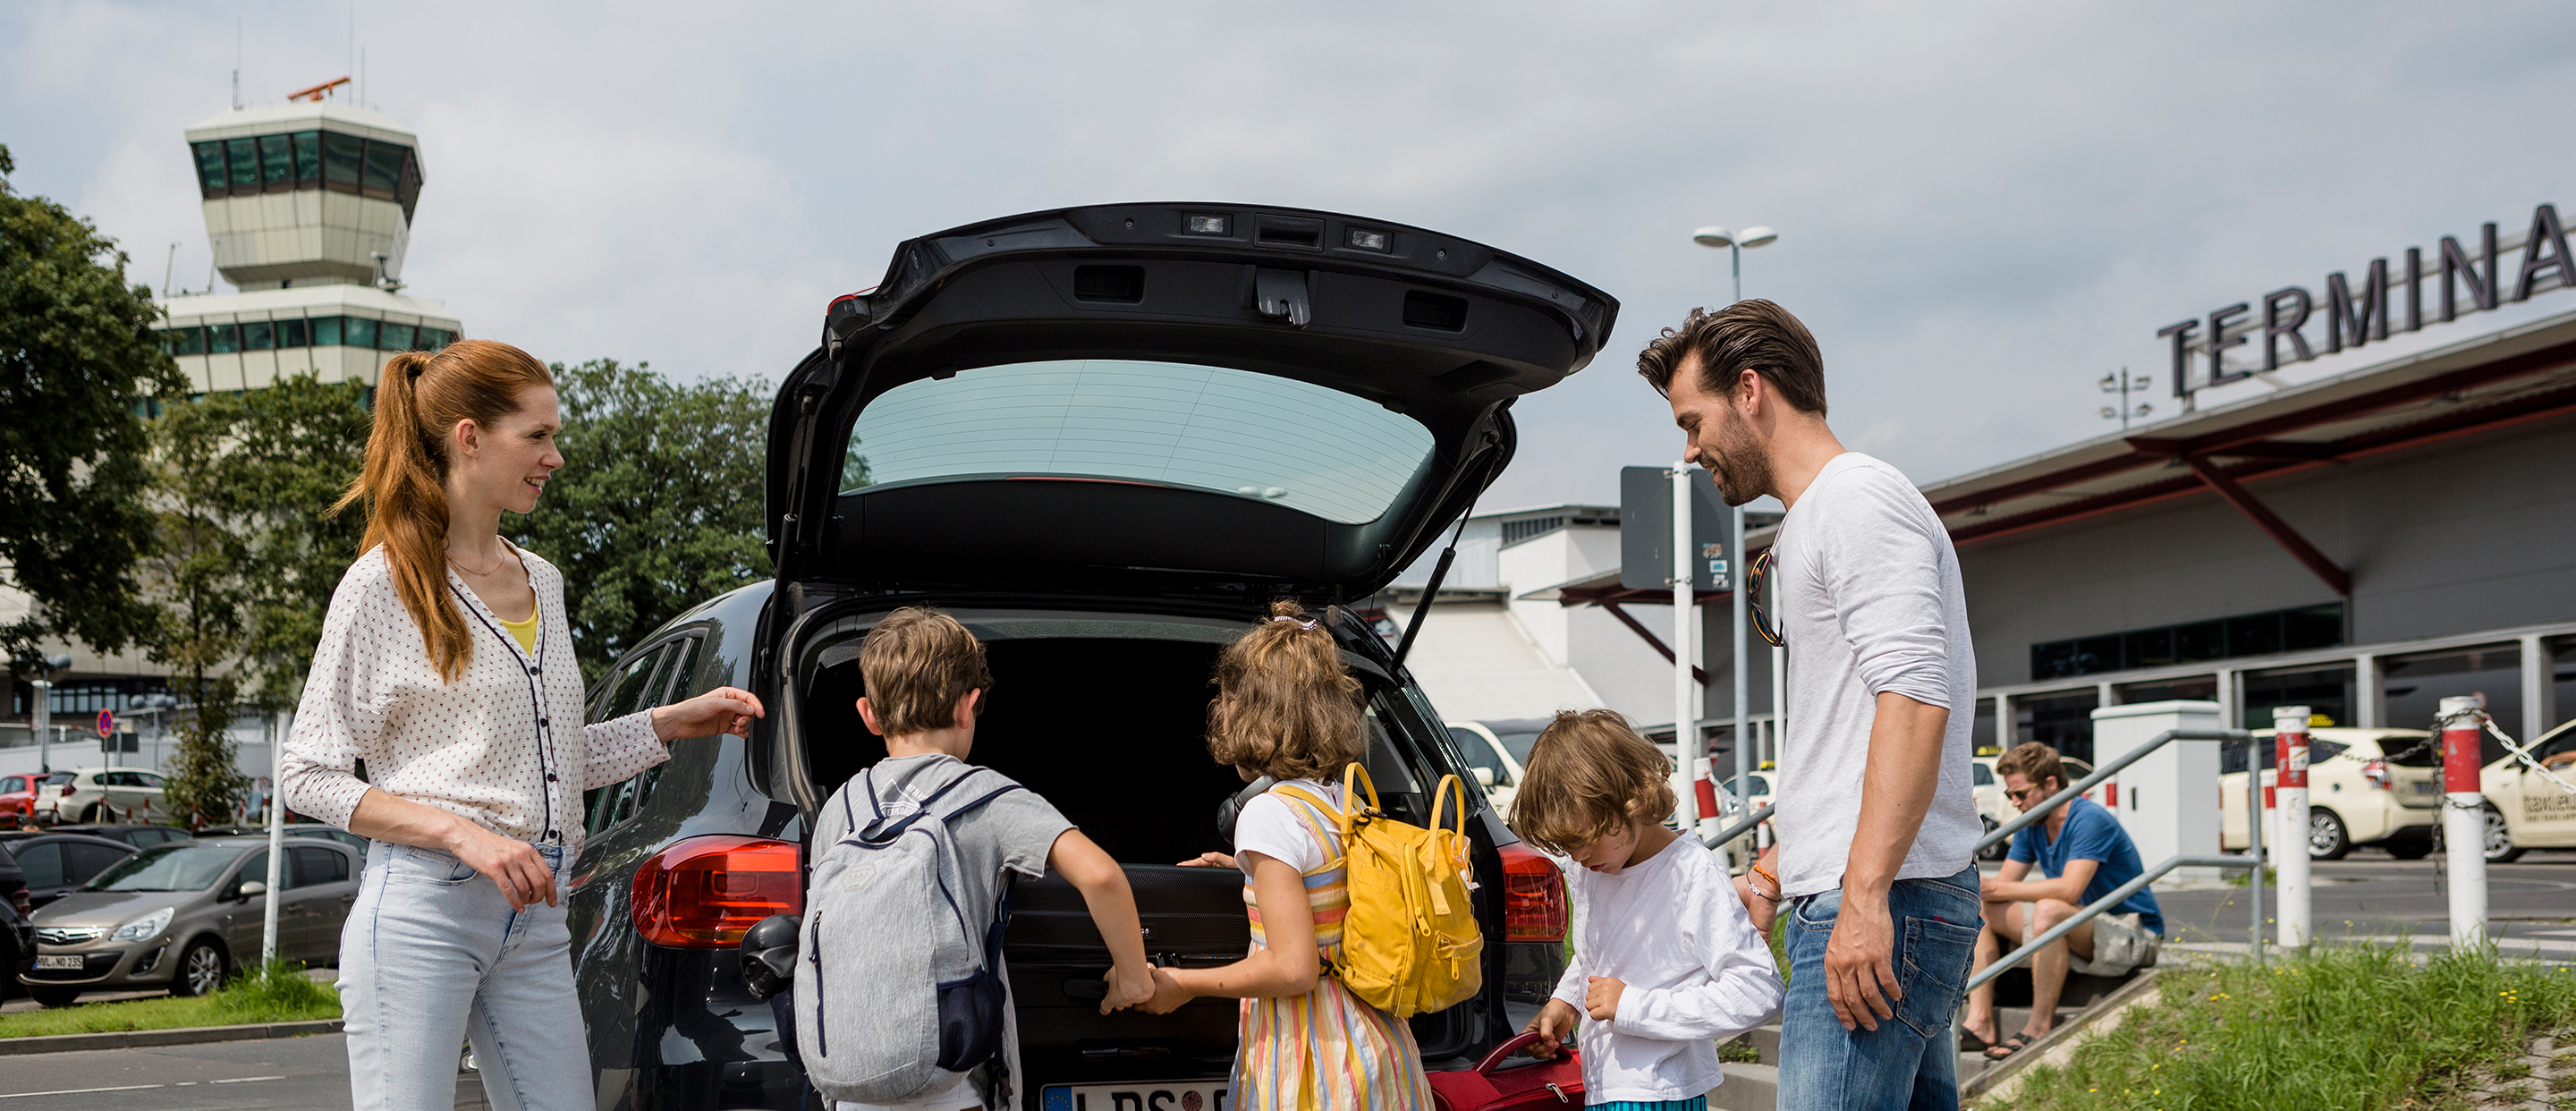 From car to plane: parking at Schönefeld and Tegel airports